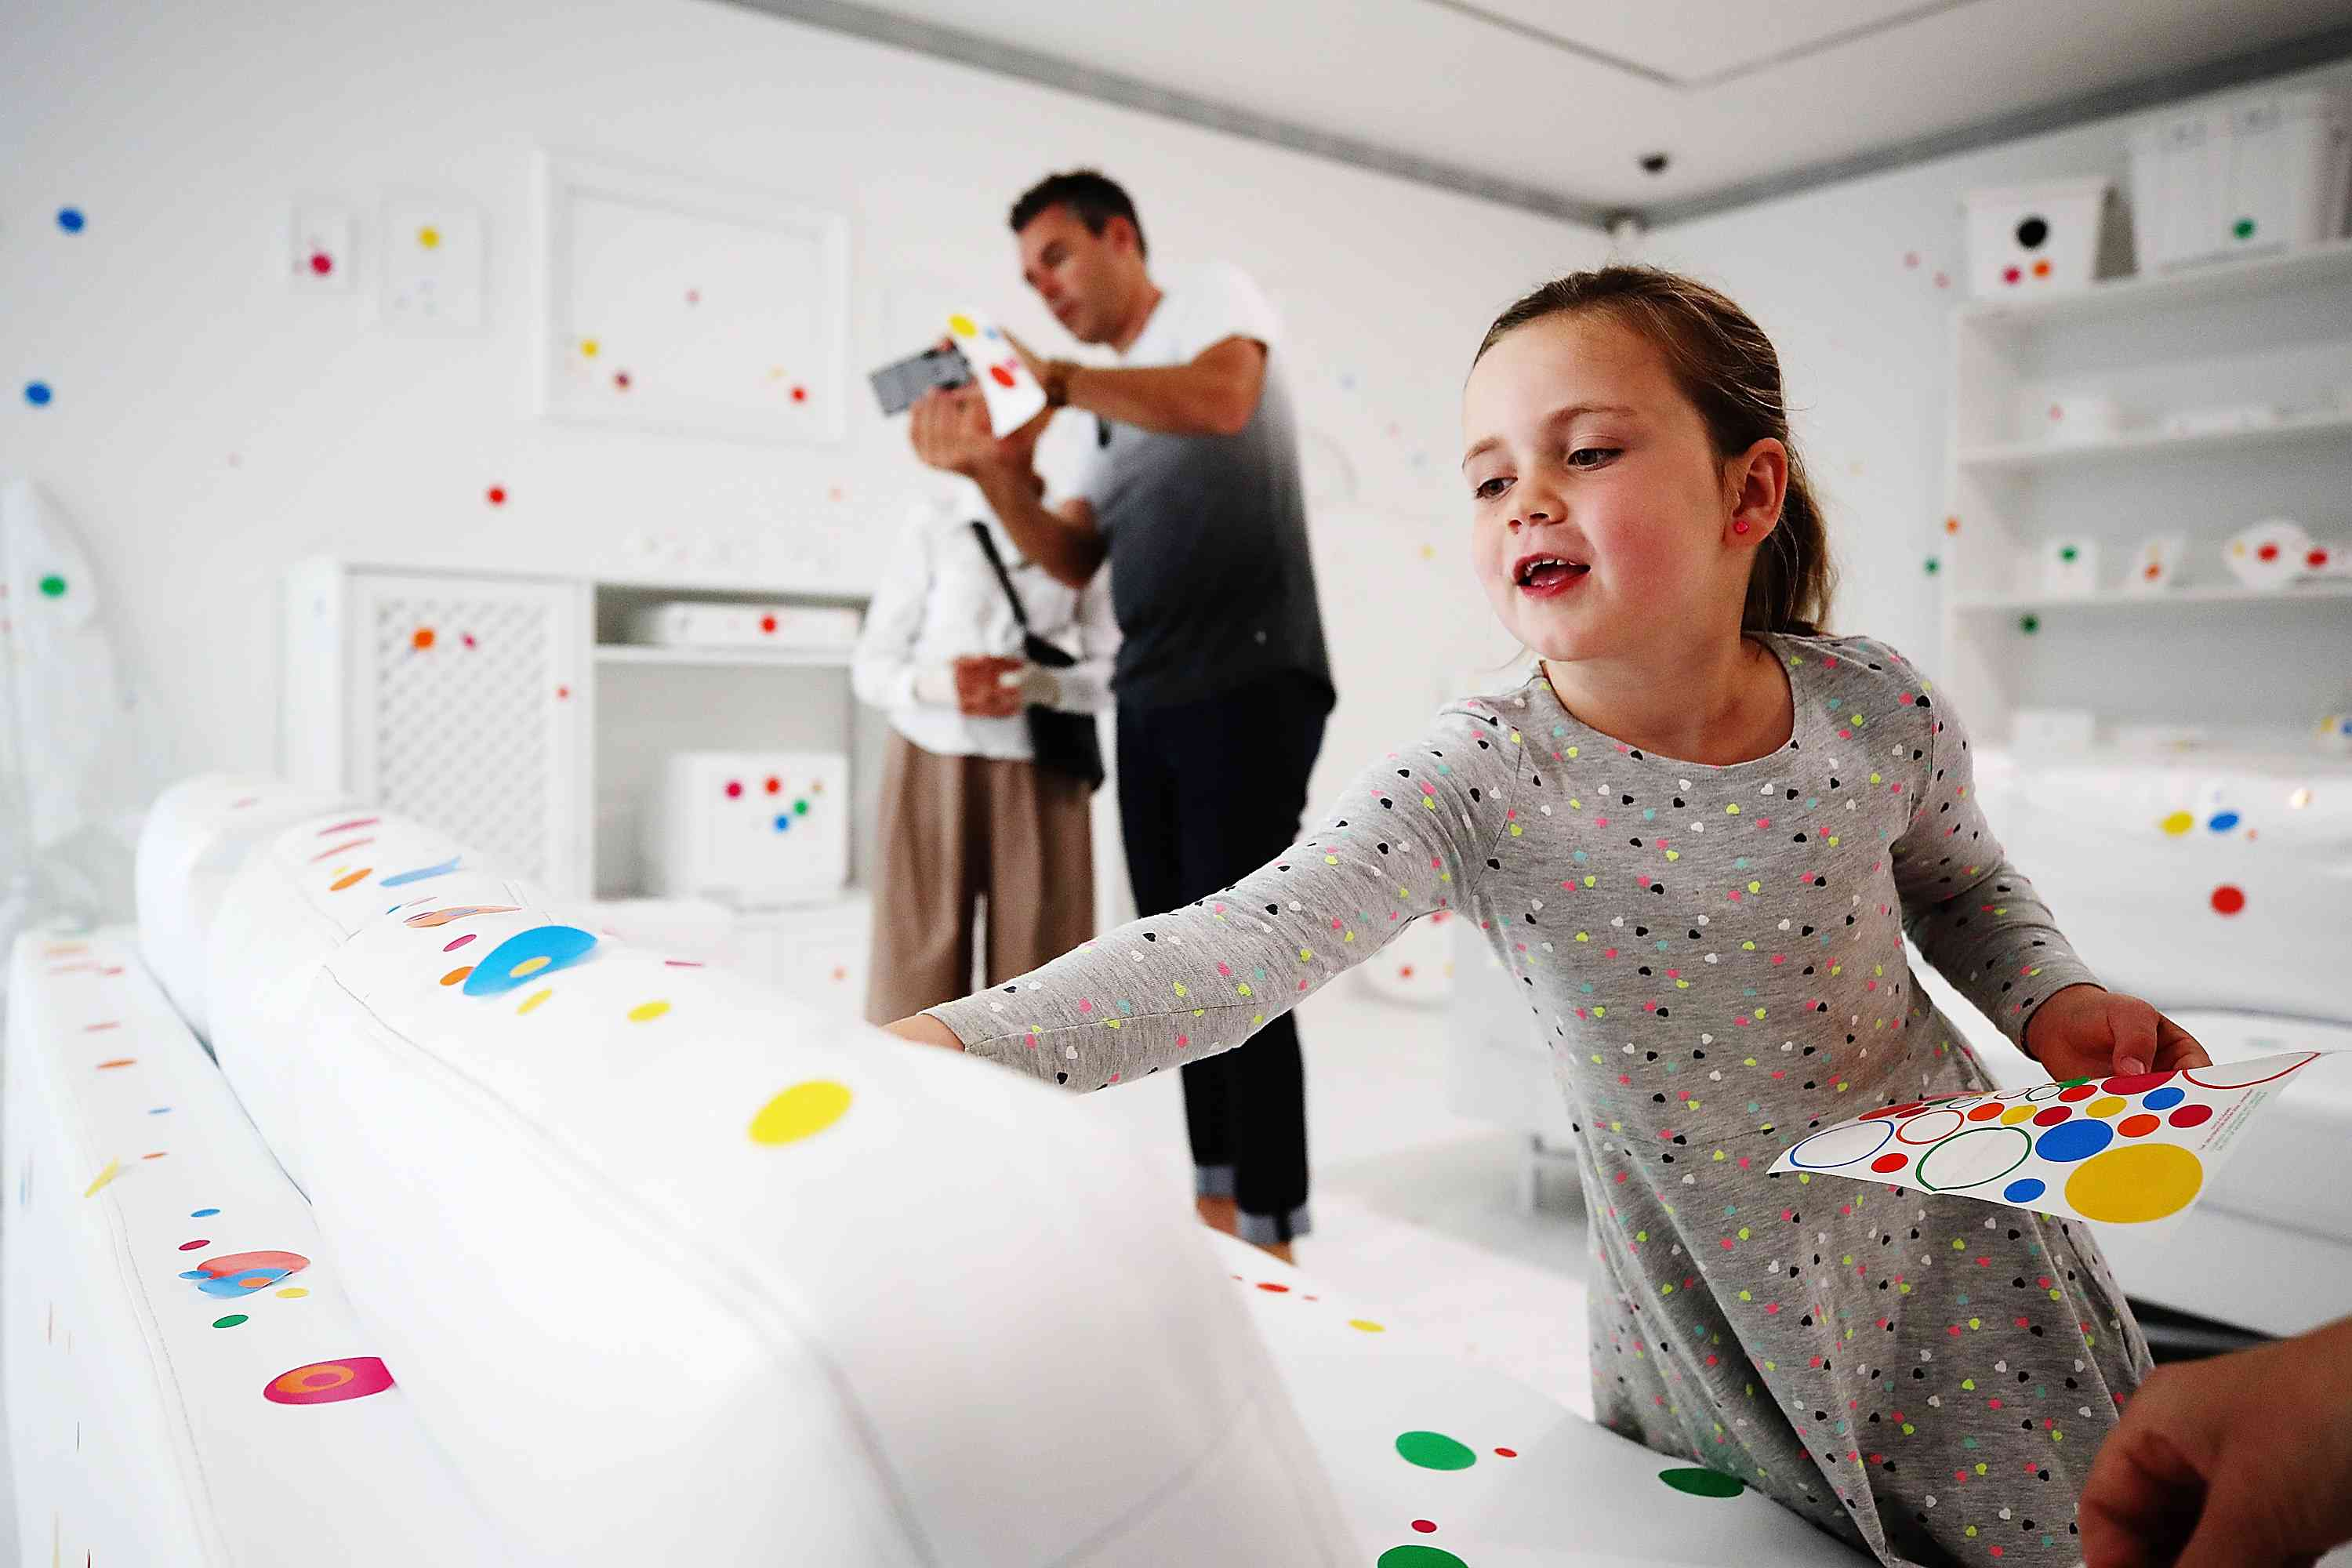 Gallery Visitors Make Their Mark On Yayoi Kusama's 'The Obliteration Room'